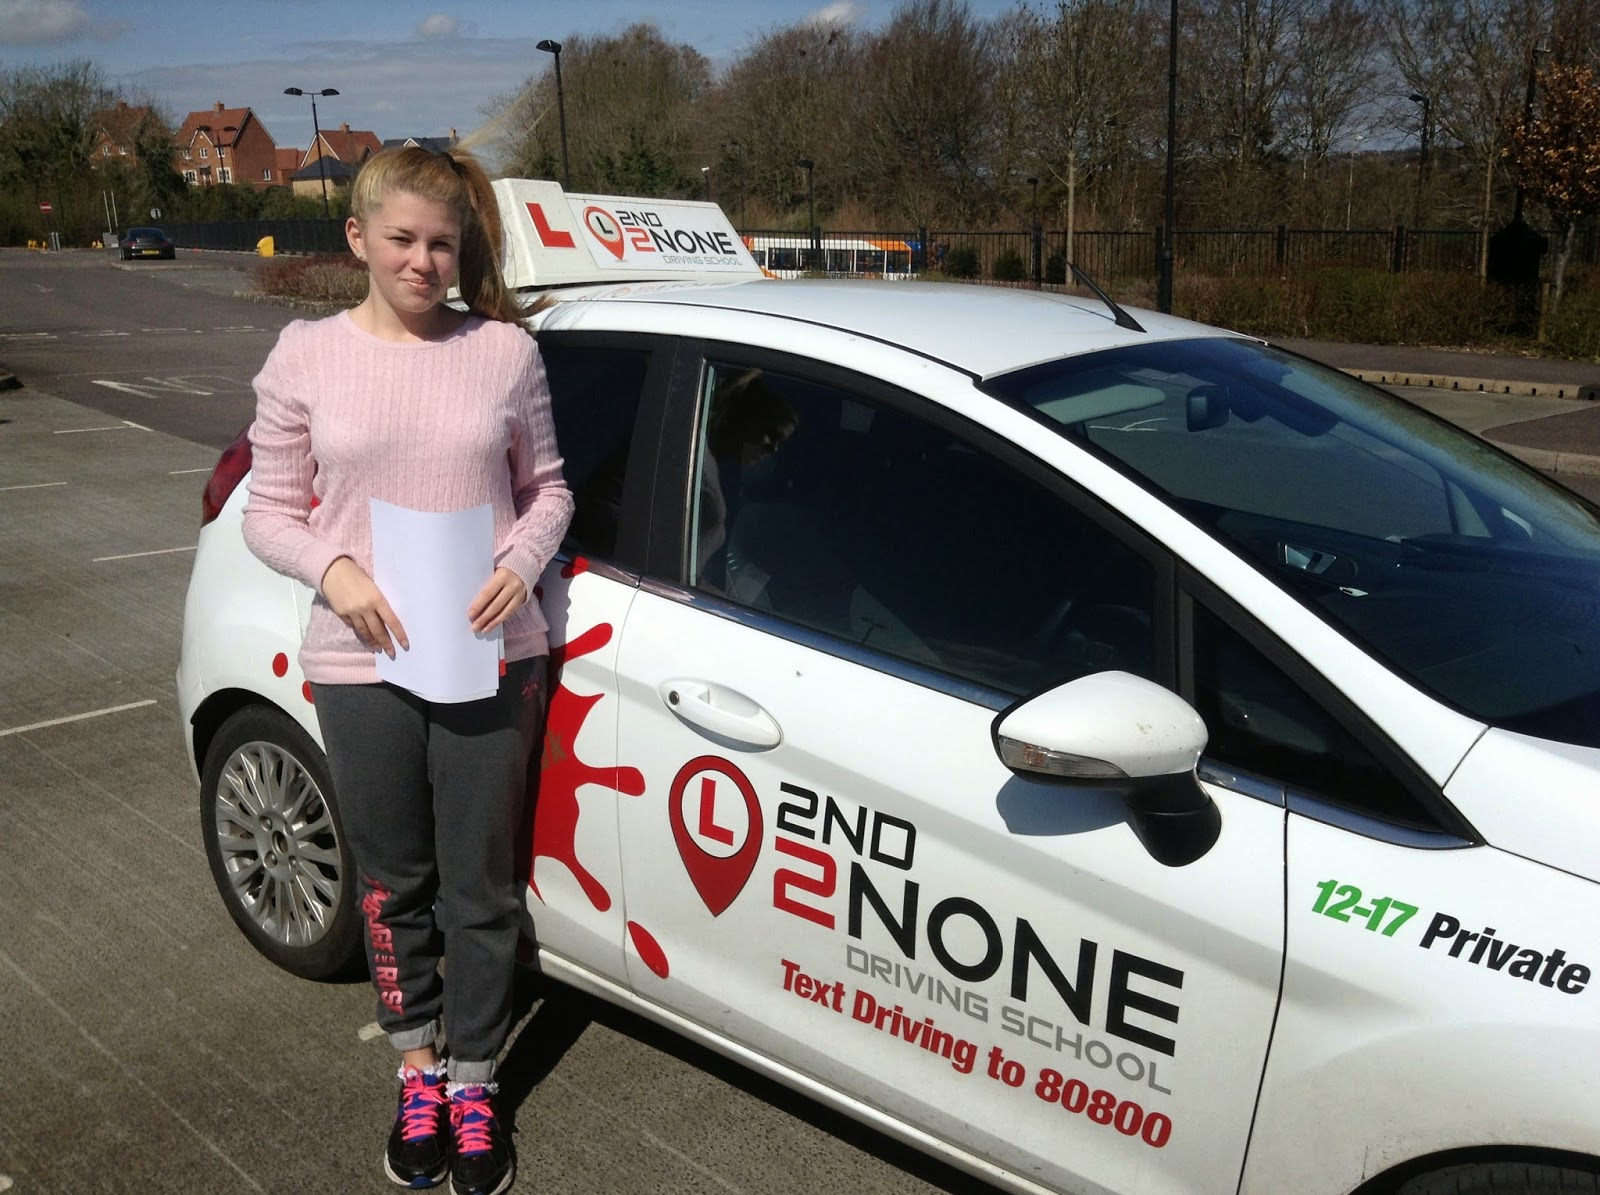 Under 17s Driving Lessons at Salisbury Park & Ride